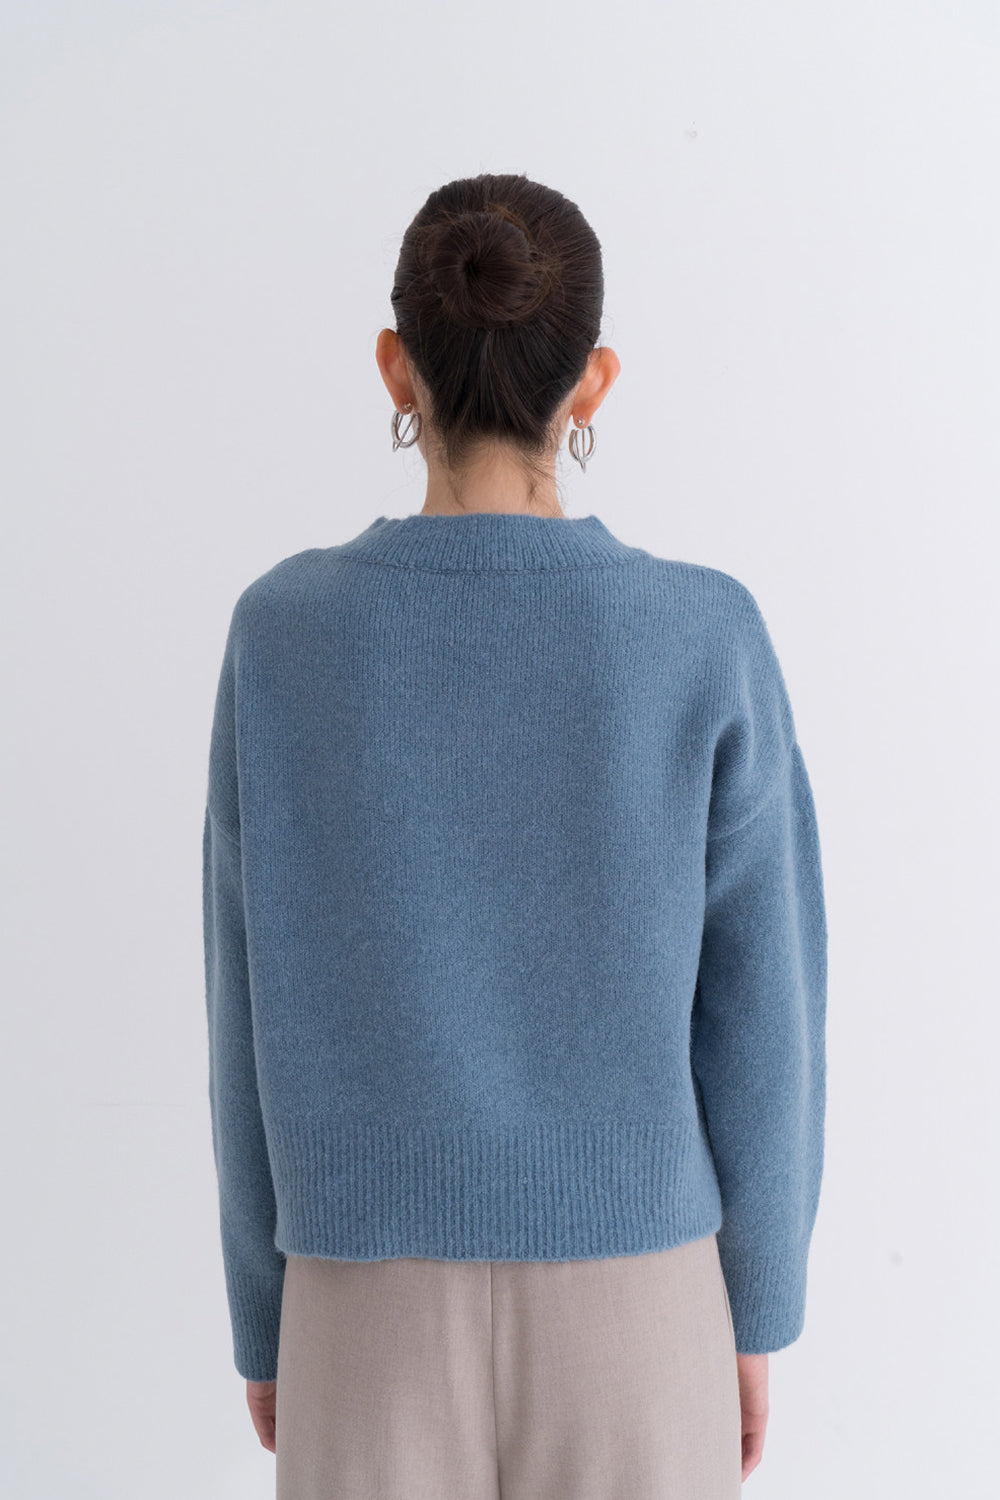 NOTA V Neck Yak Semi Crop Knit Top Blue Modest Loose Women Sweater With Long Sleeves in Wool and Yak